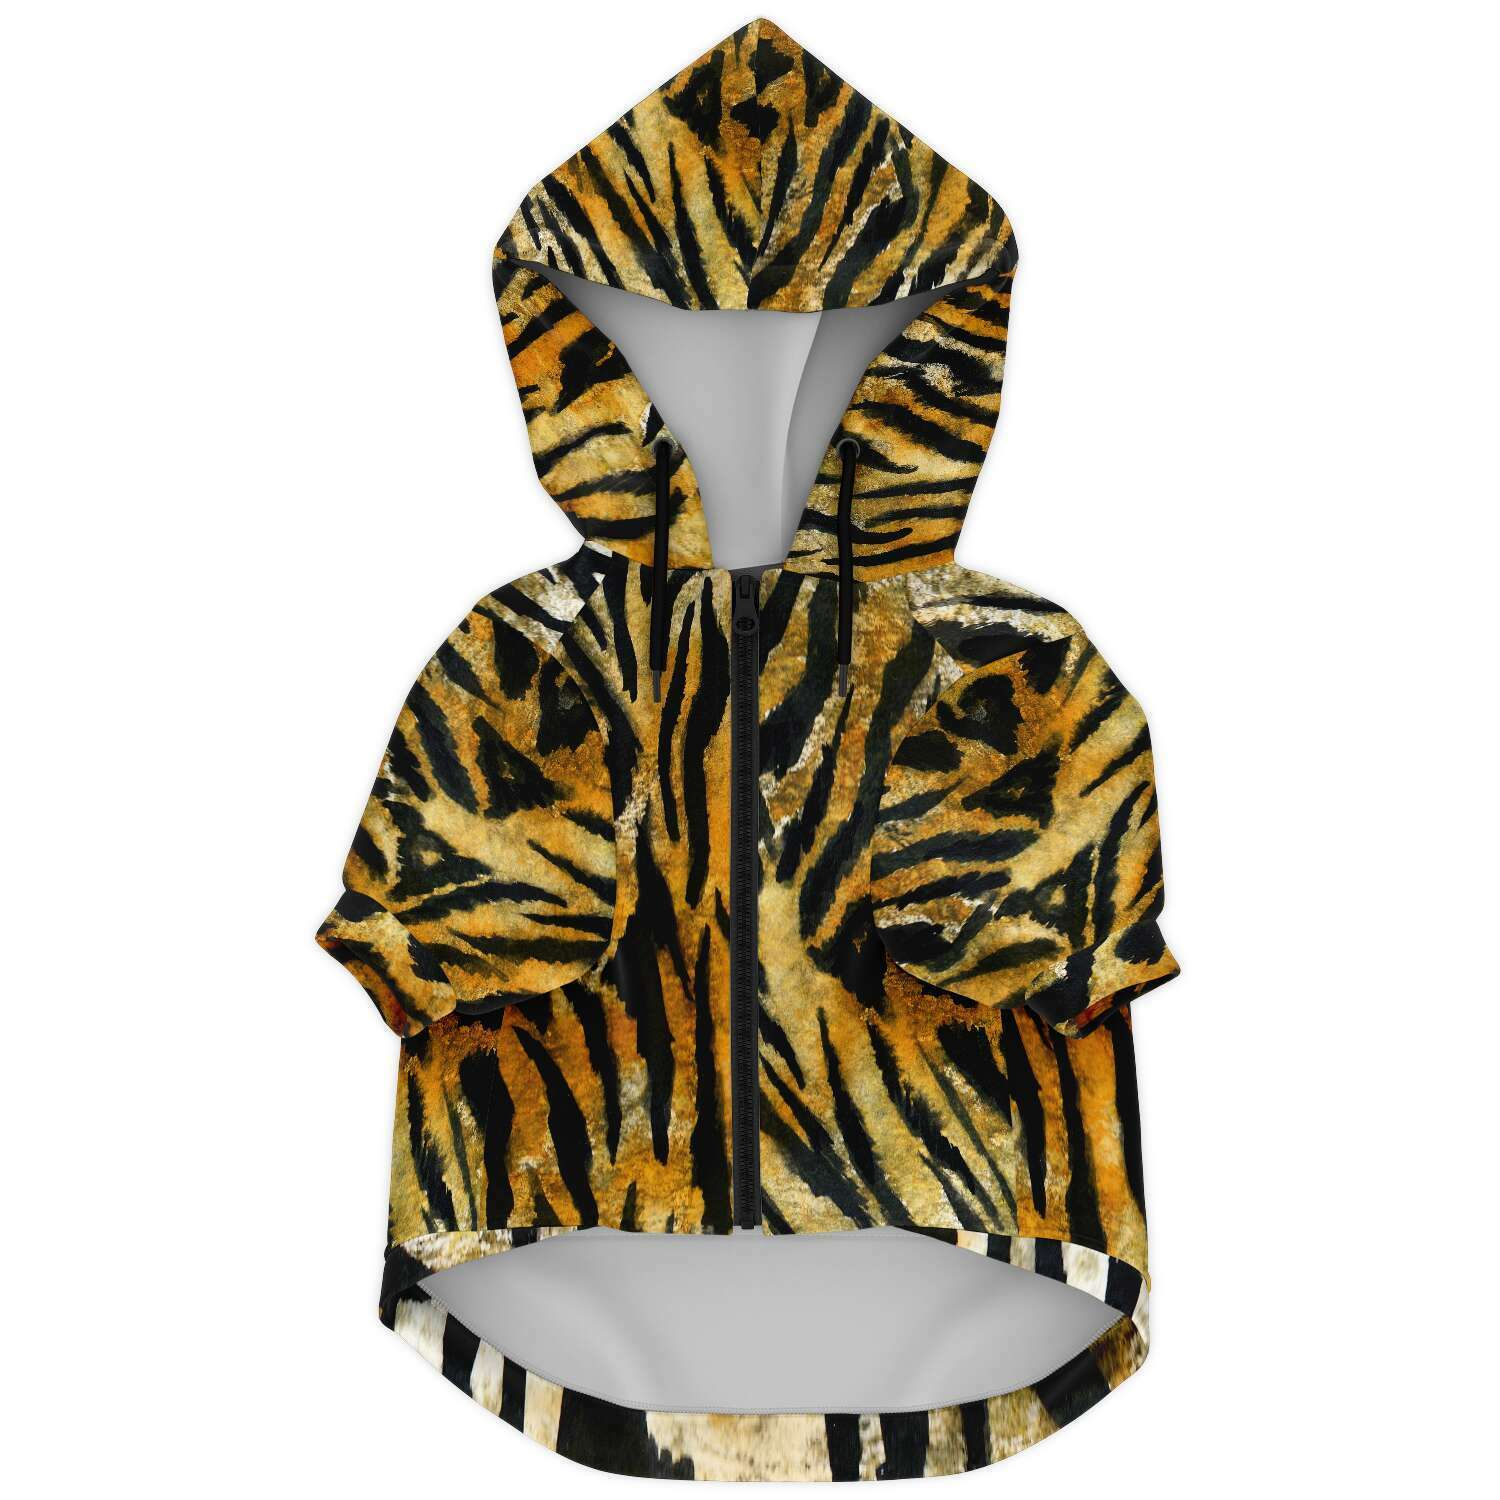 Tiger Stripe Print Dog Hoodie, Soft Comfortable Zip-Up Premium Hoodie For Dog Pet Owners-Athletic Dog Zip-Up Hoodie - AOP-Subliminator-XXS-Heidi Kimura Art LLC Tiger Stripe Print Dog Hoodie, Animal Print Soft Comfortable Zip-Up Premium Fashion Hoodie For Dog Pet Owners, For Tiny Small Dogs to Medium/ Large Size Dogs (Size: XXS-2XL)